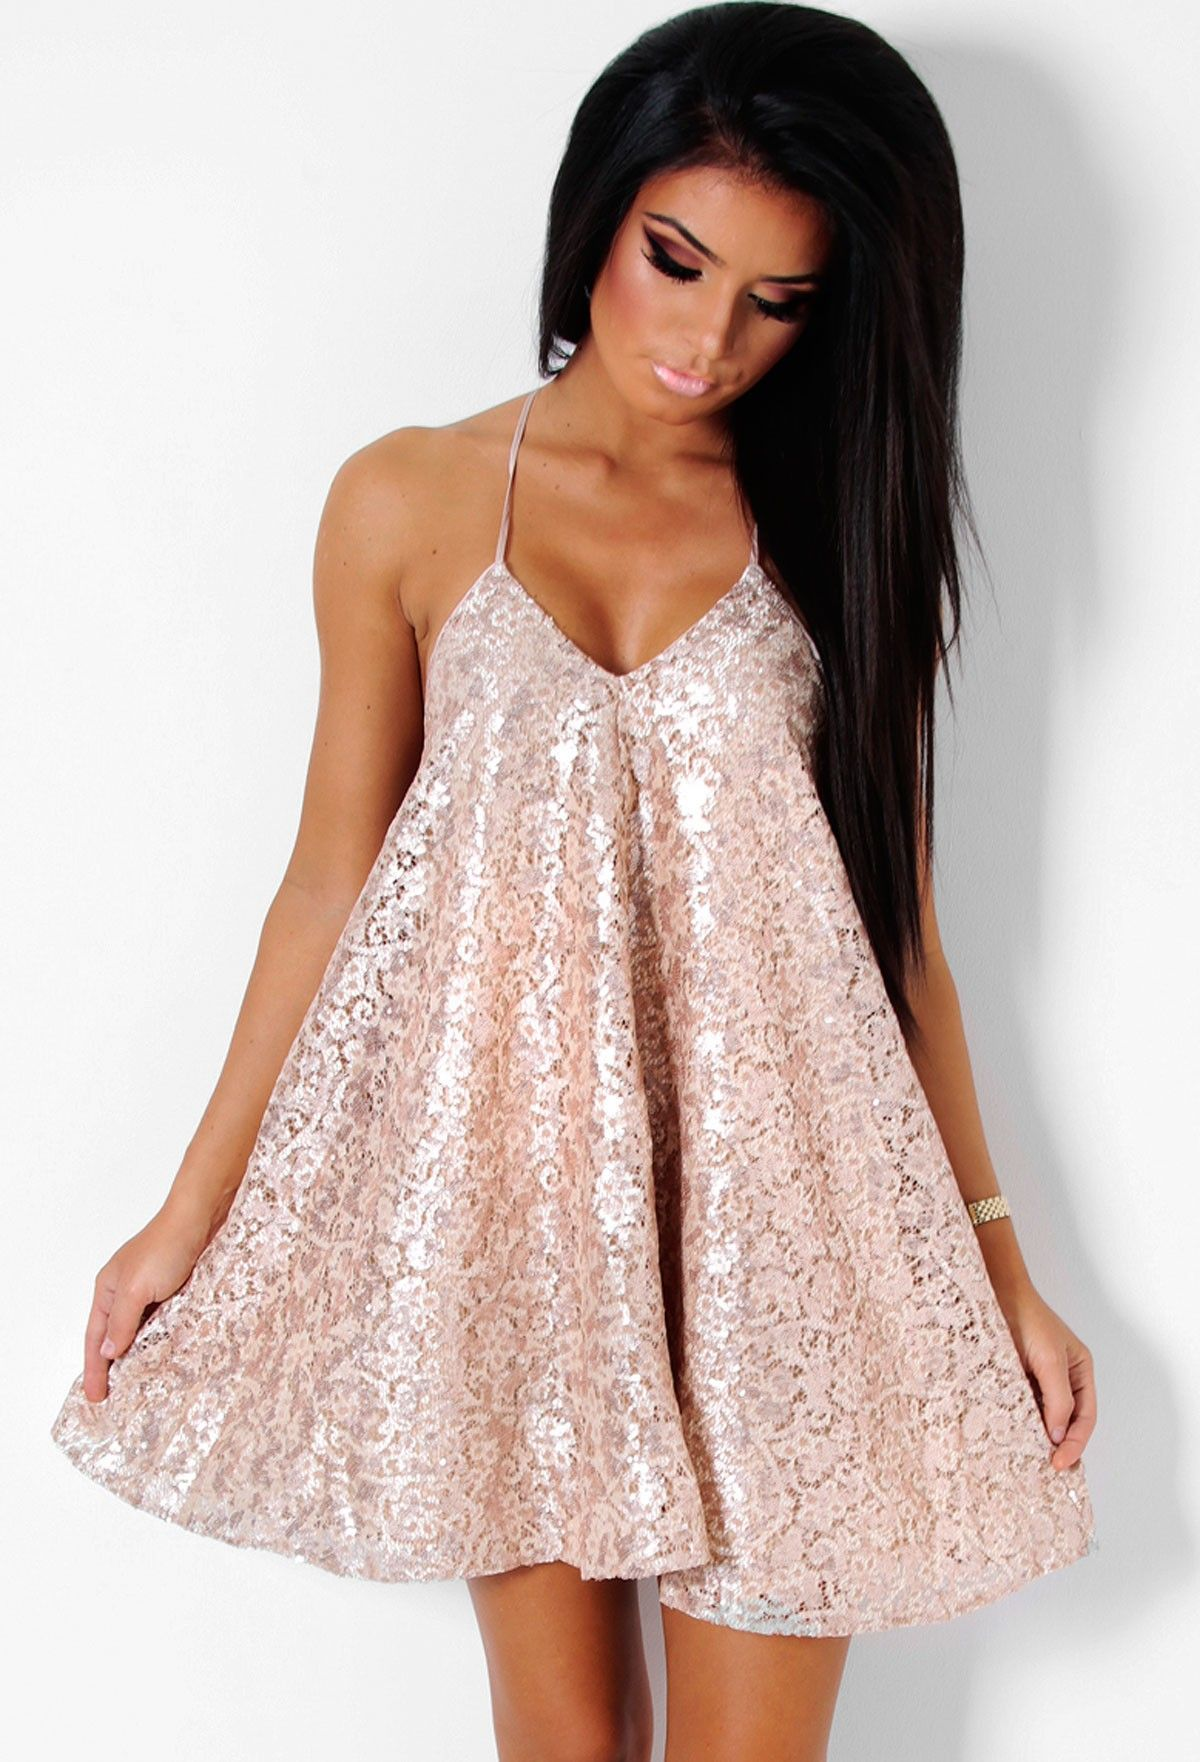 Kirsten Gold Sequin and Lace Halter Swing Dress | Sequins, Swings ...